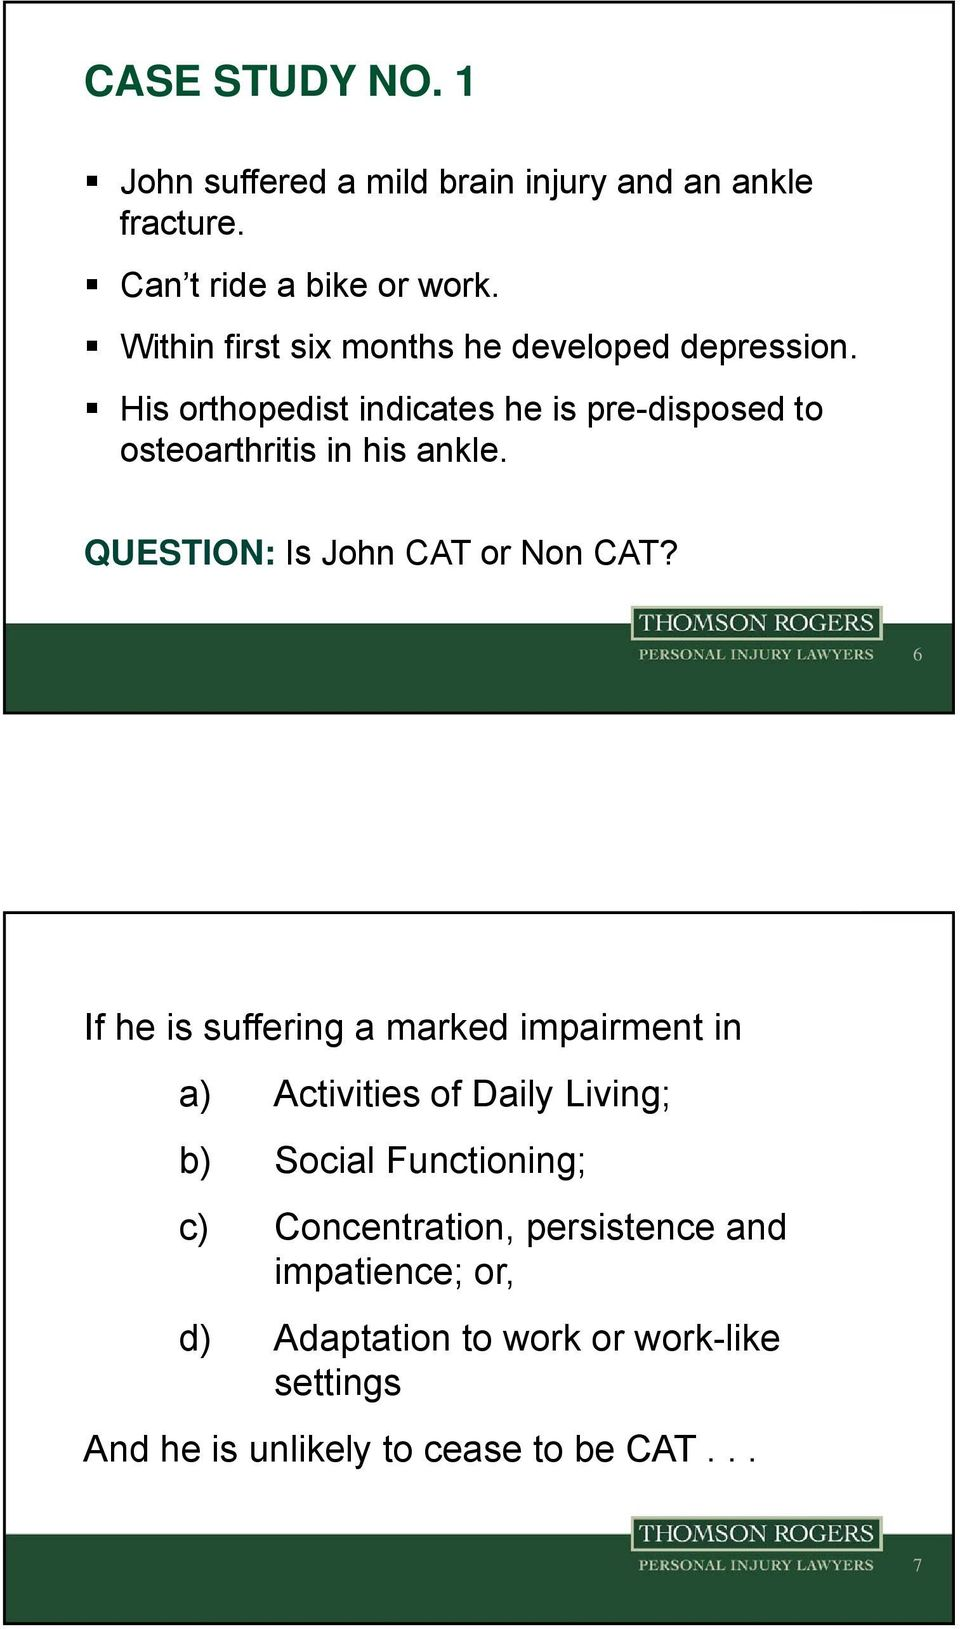 His orthopedist indicates he is pre-disposed to osteoarthritis in his ankle. QUESTION: Is John CAT or Non CAT?